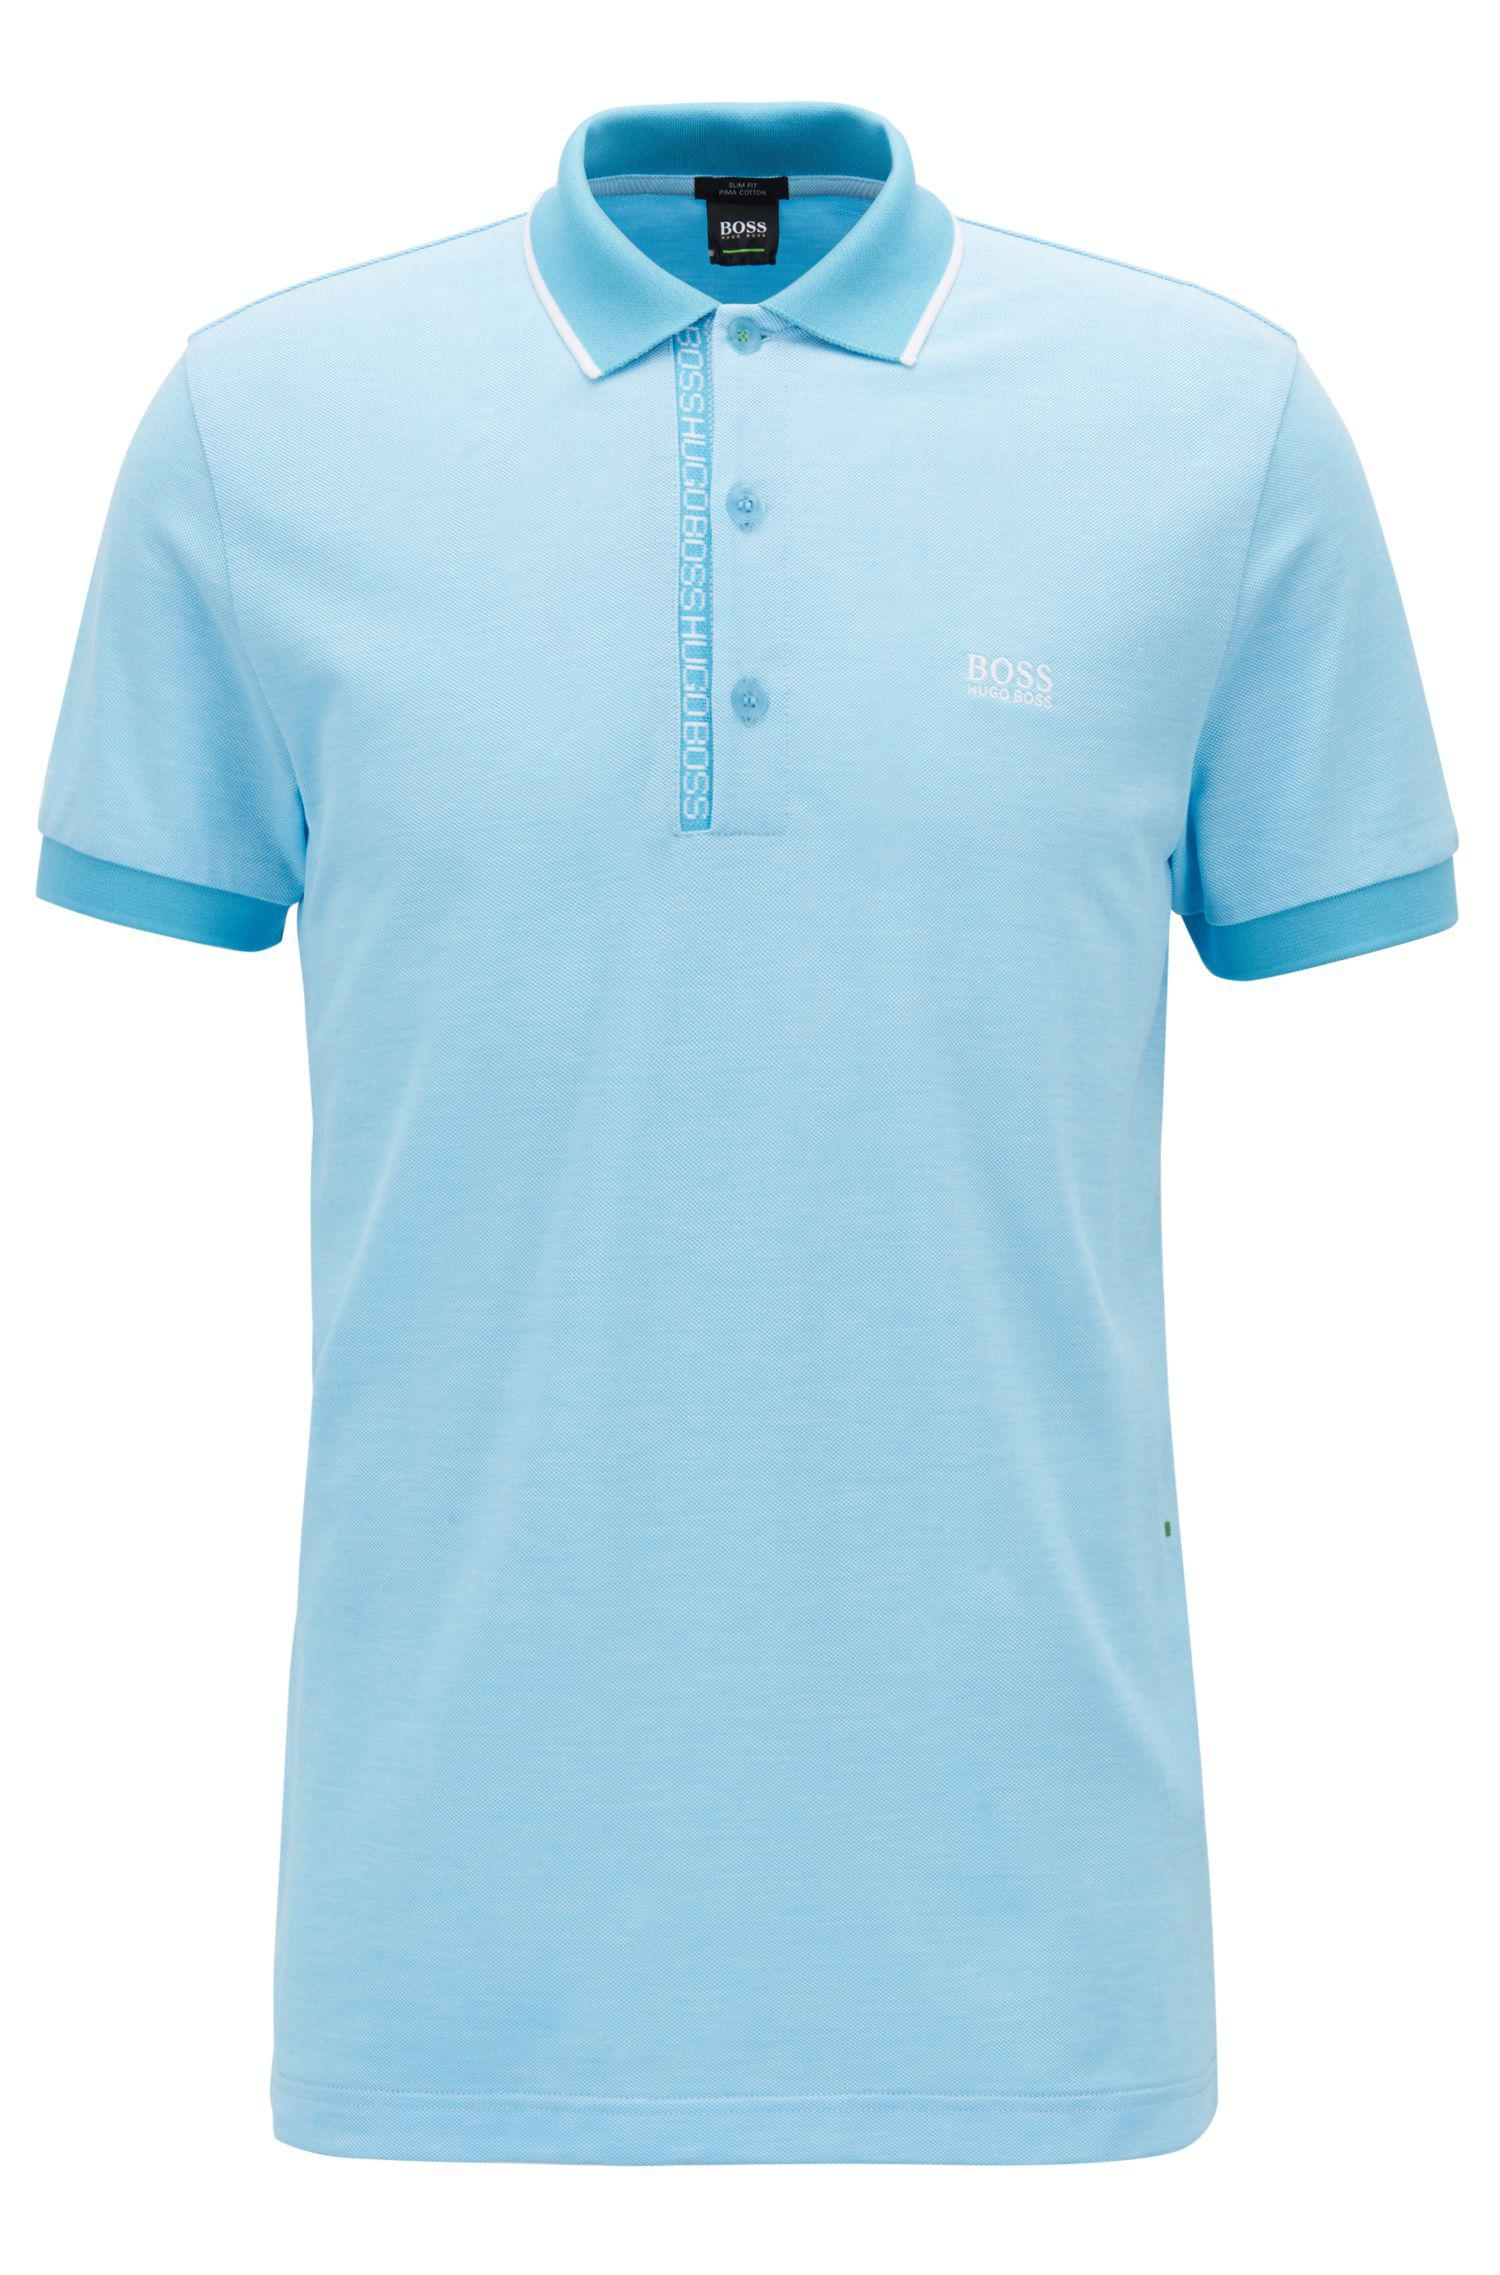 84775c303 BOSS Slim-fit Polo Shirt In Pima-cotton Oxford Piqué in Blue for Men ...